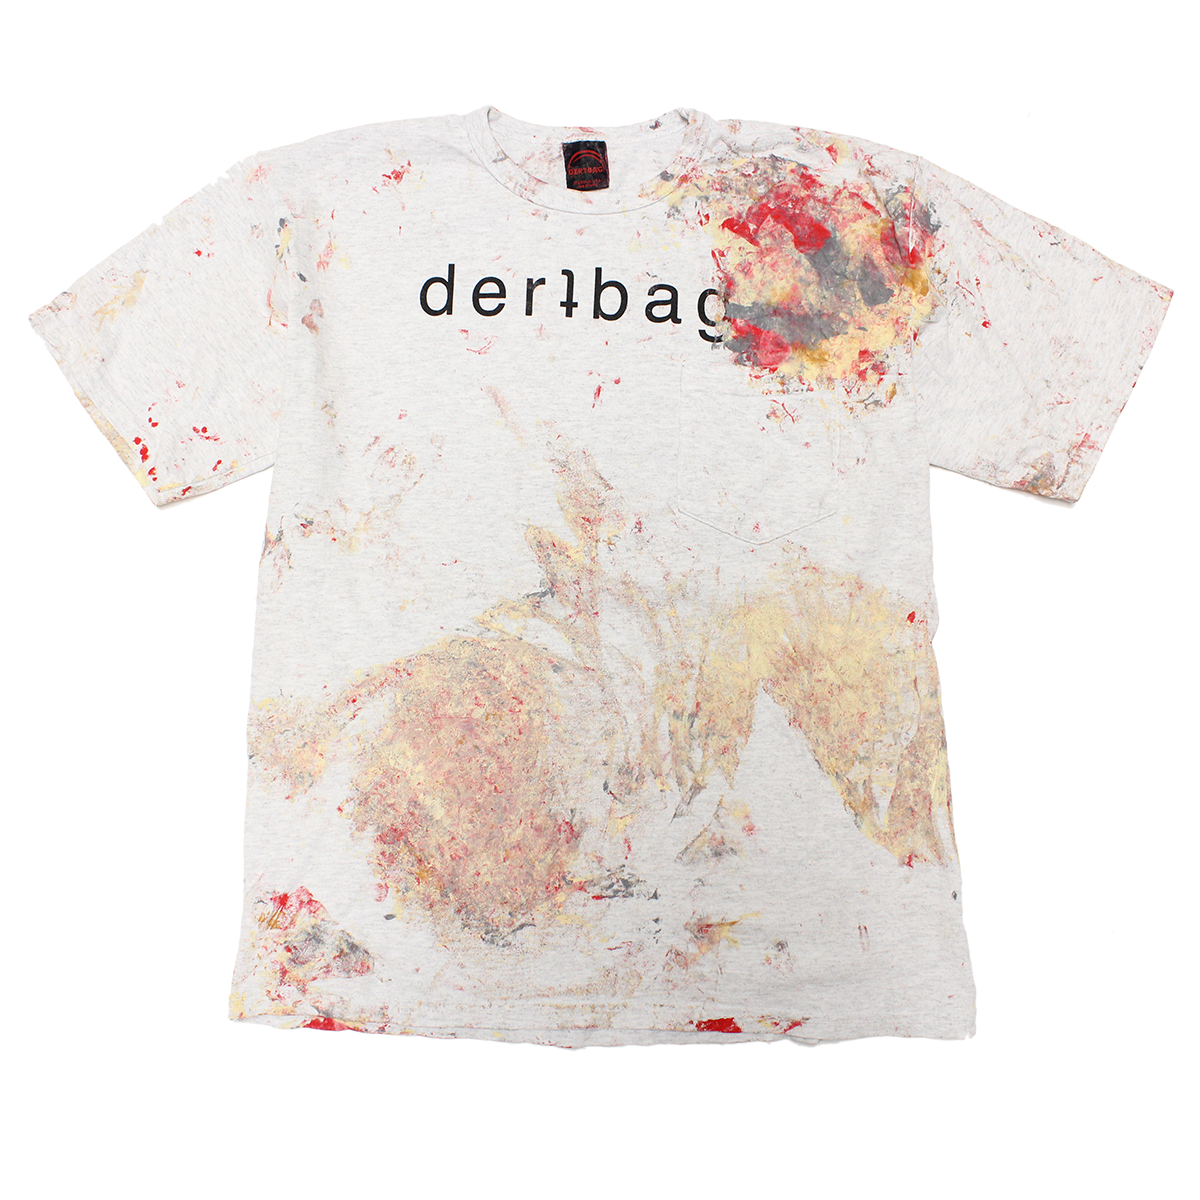 ASH PAINTED LOGO SHIRT - MEDIUM